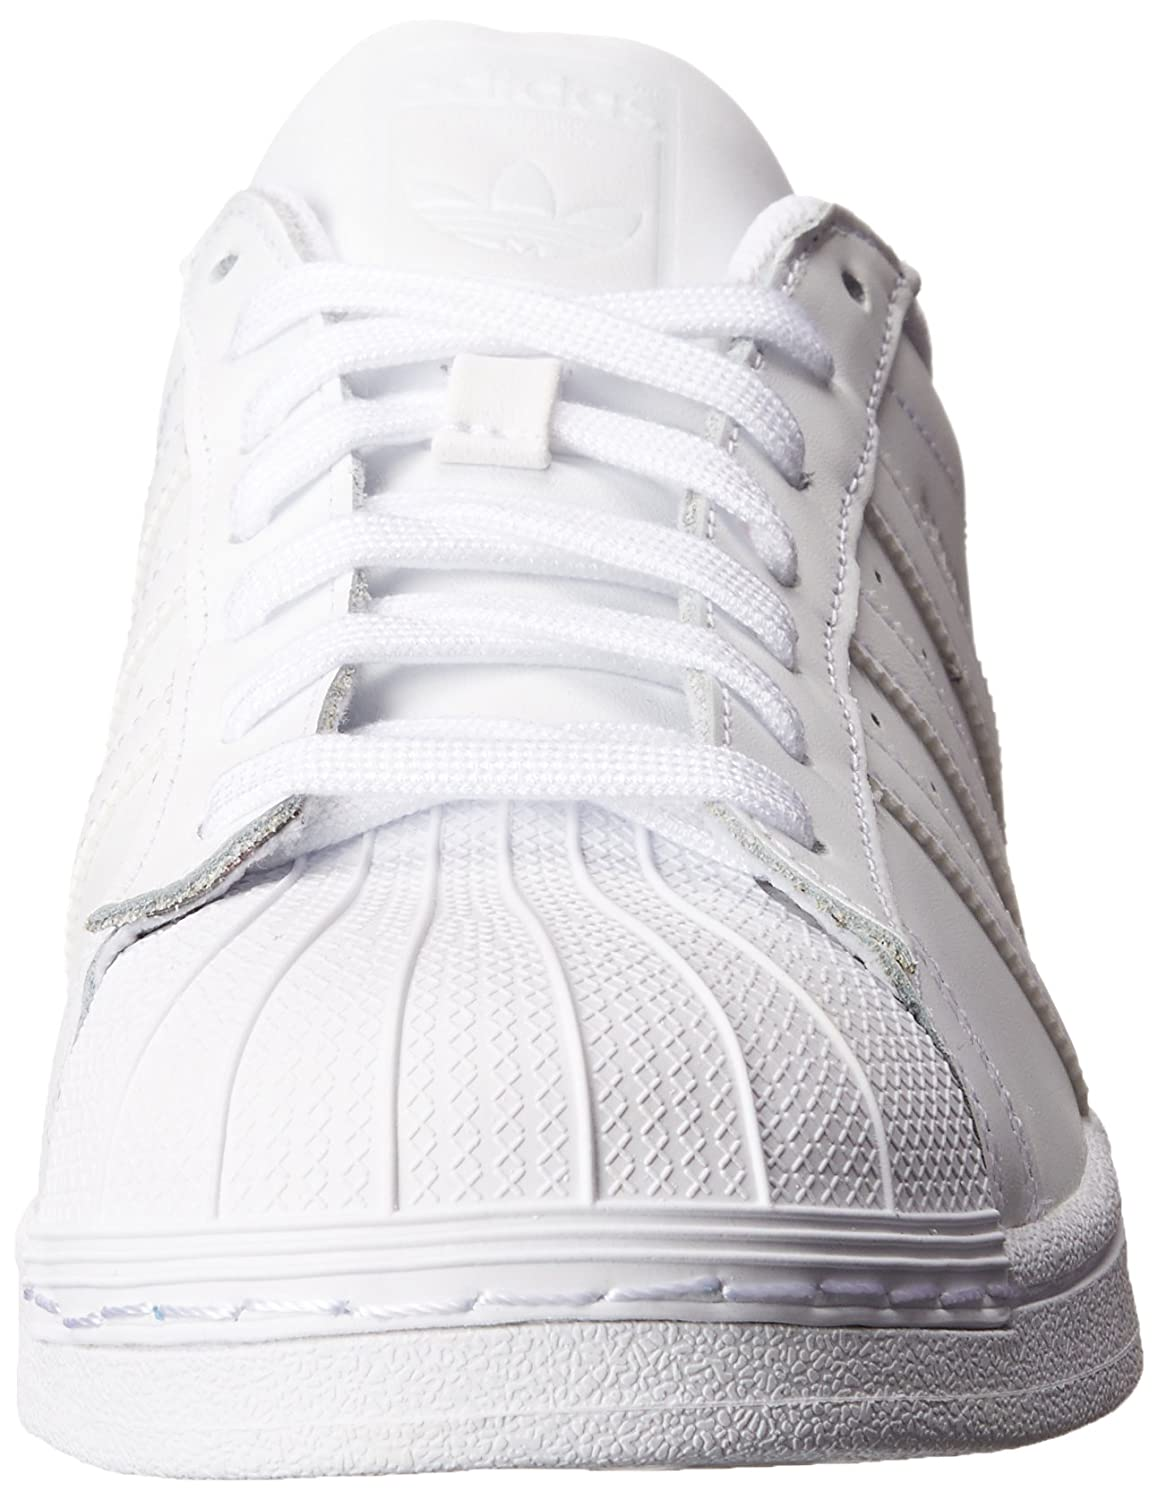 Adidas-Superstar-Women-039-s-Fashion-Casual-Sneakers-Athletic-Shoes-Originals thumbnail 56